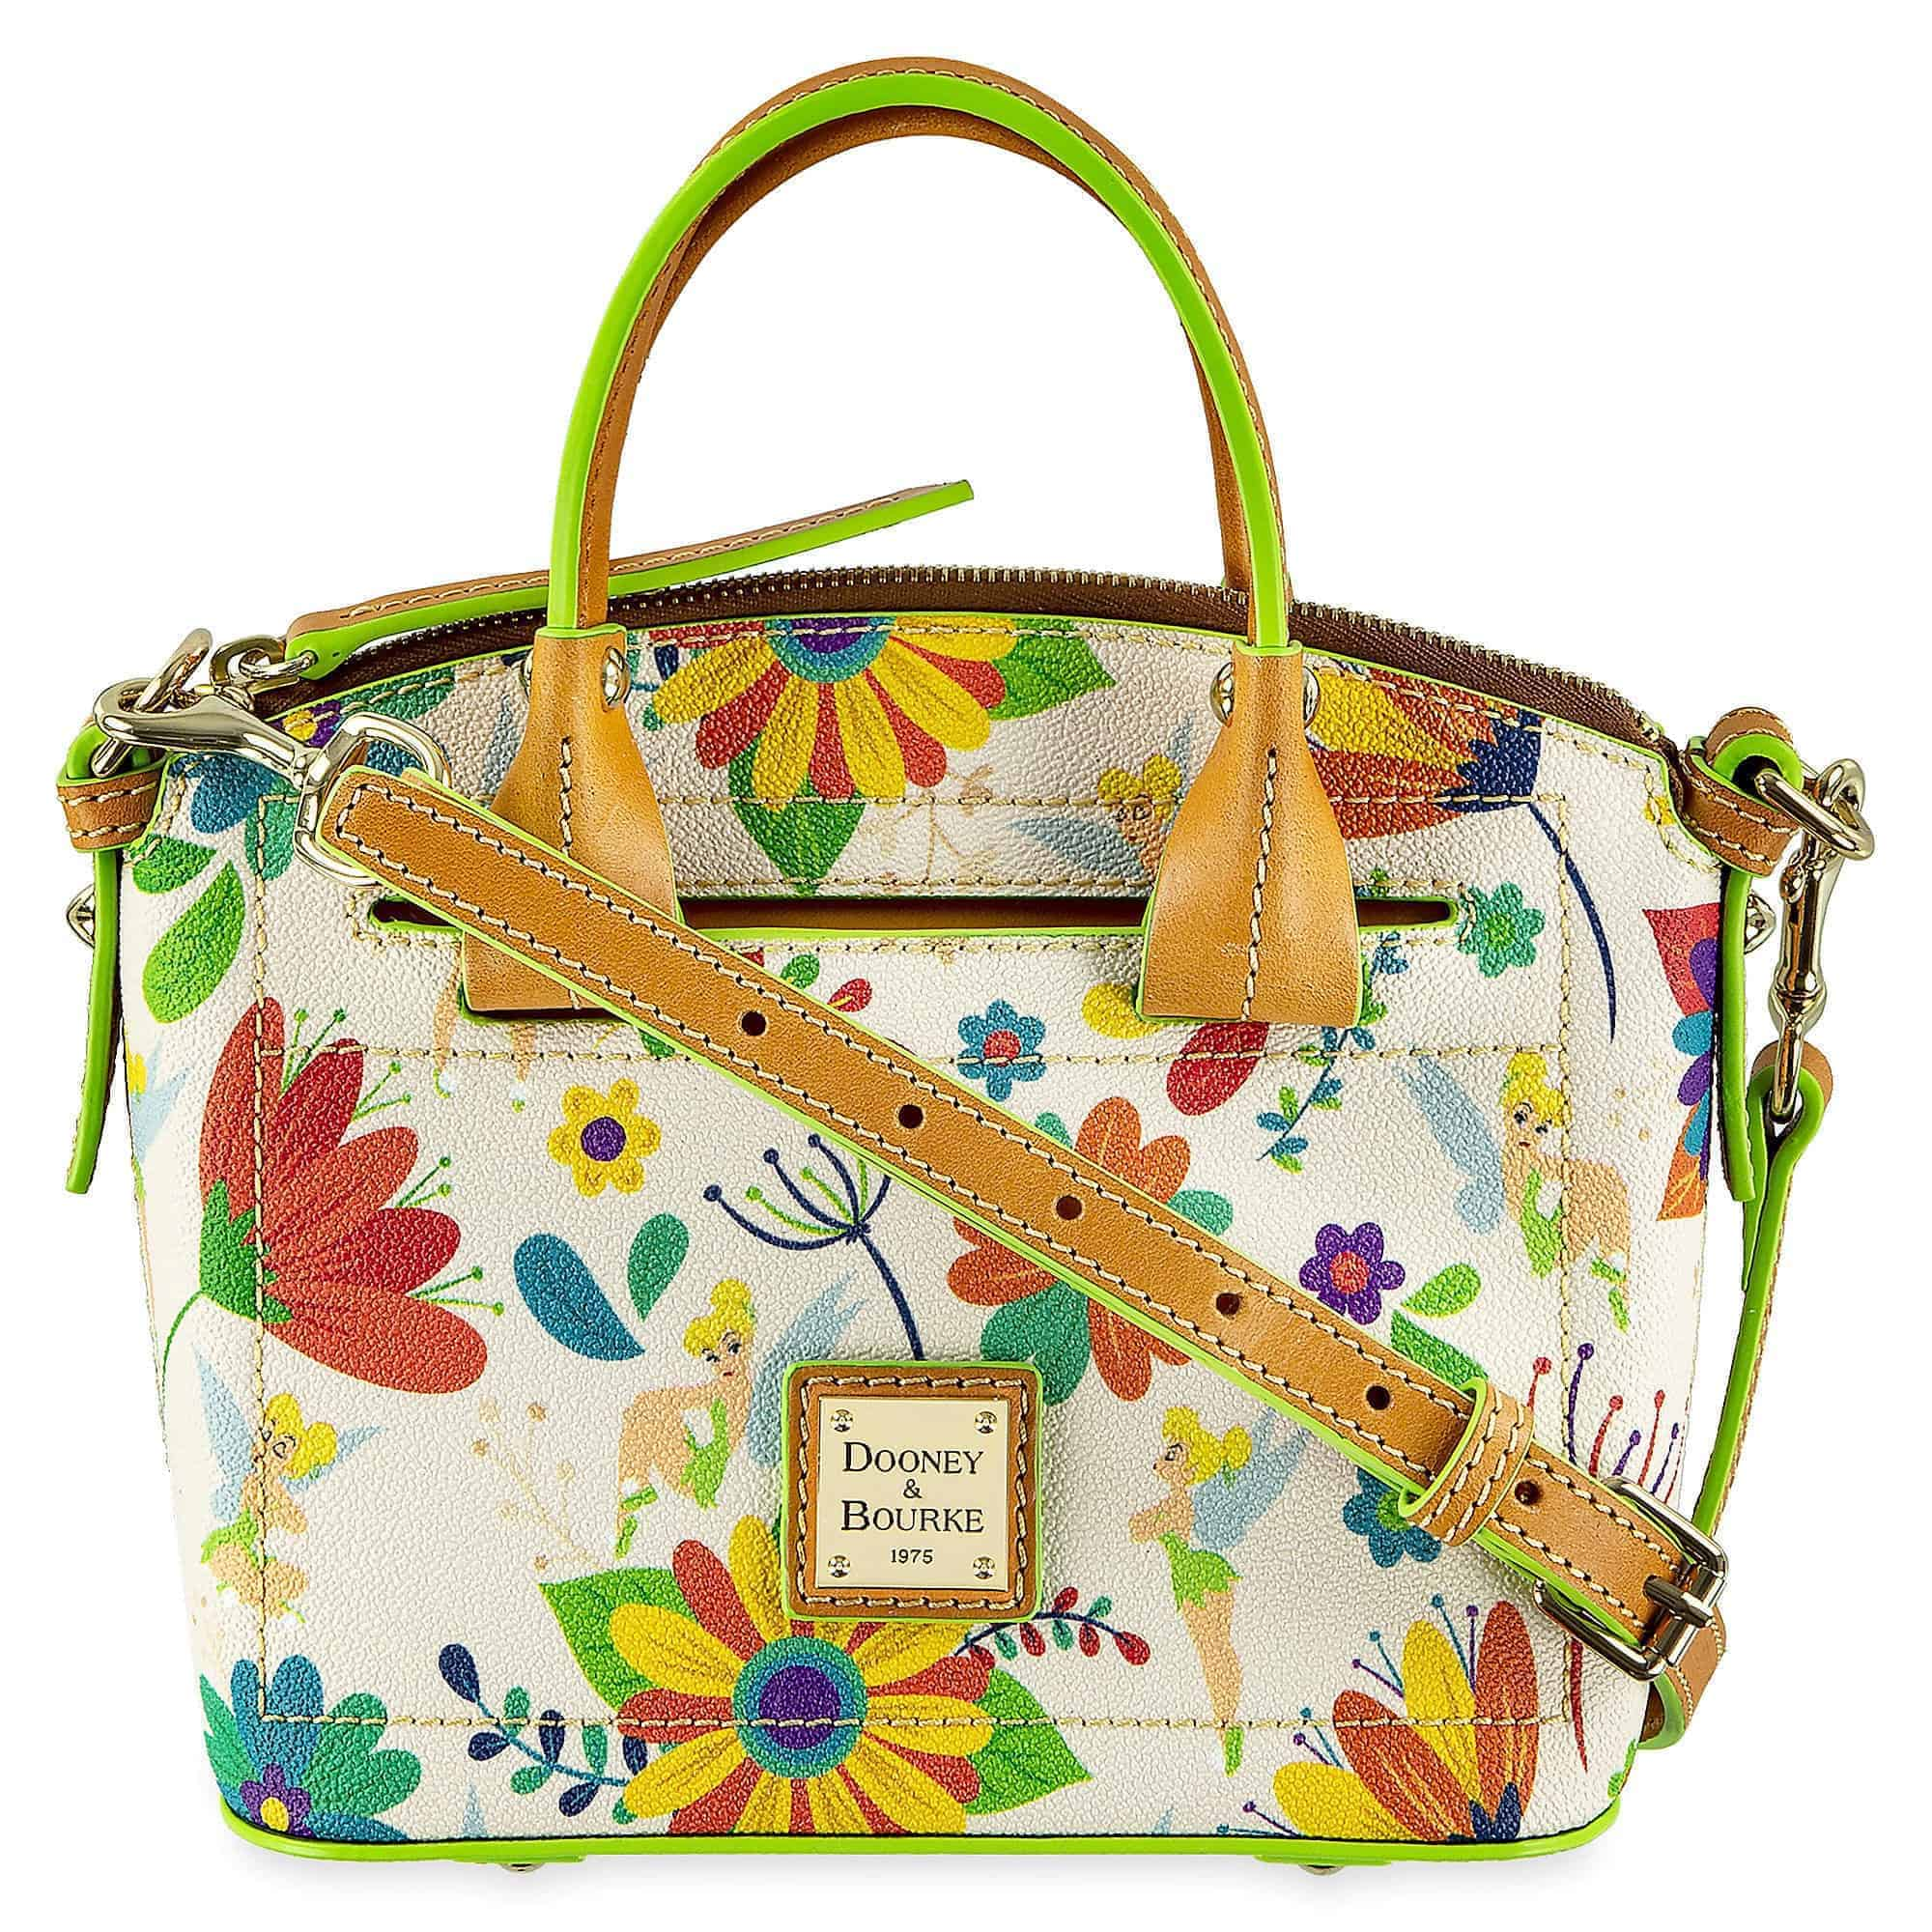 #1 - Tinker Bell 2019 by Disney Dooney & Bourke